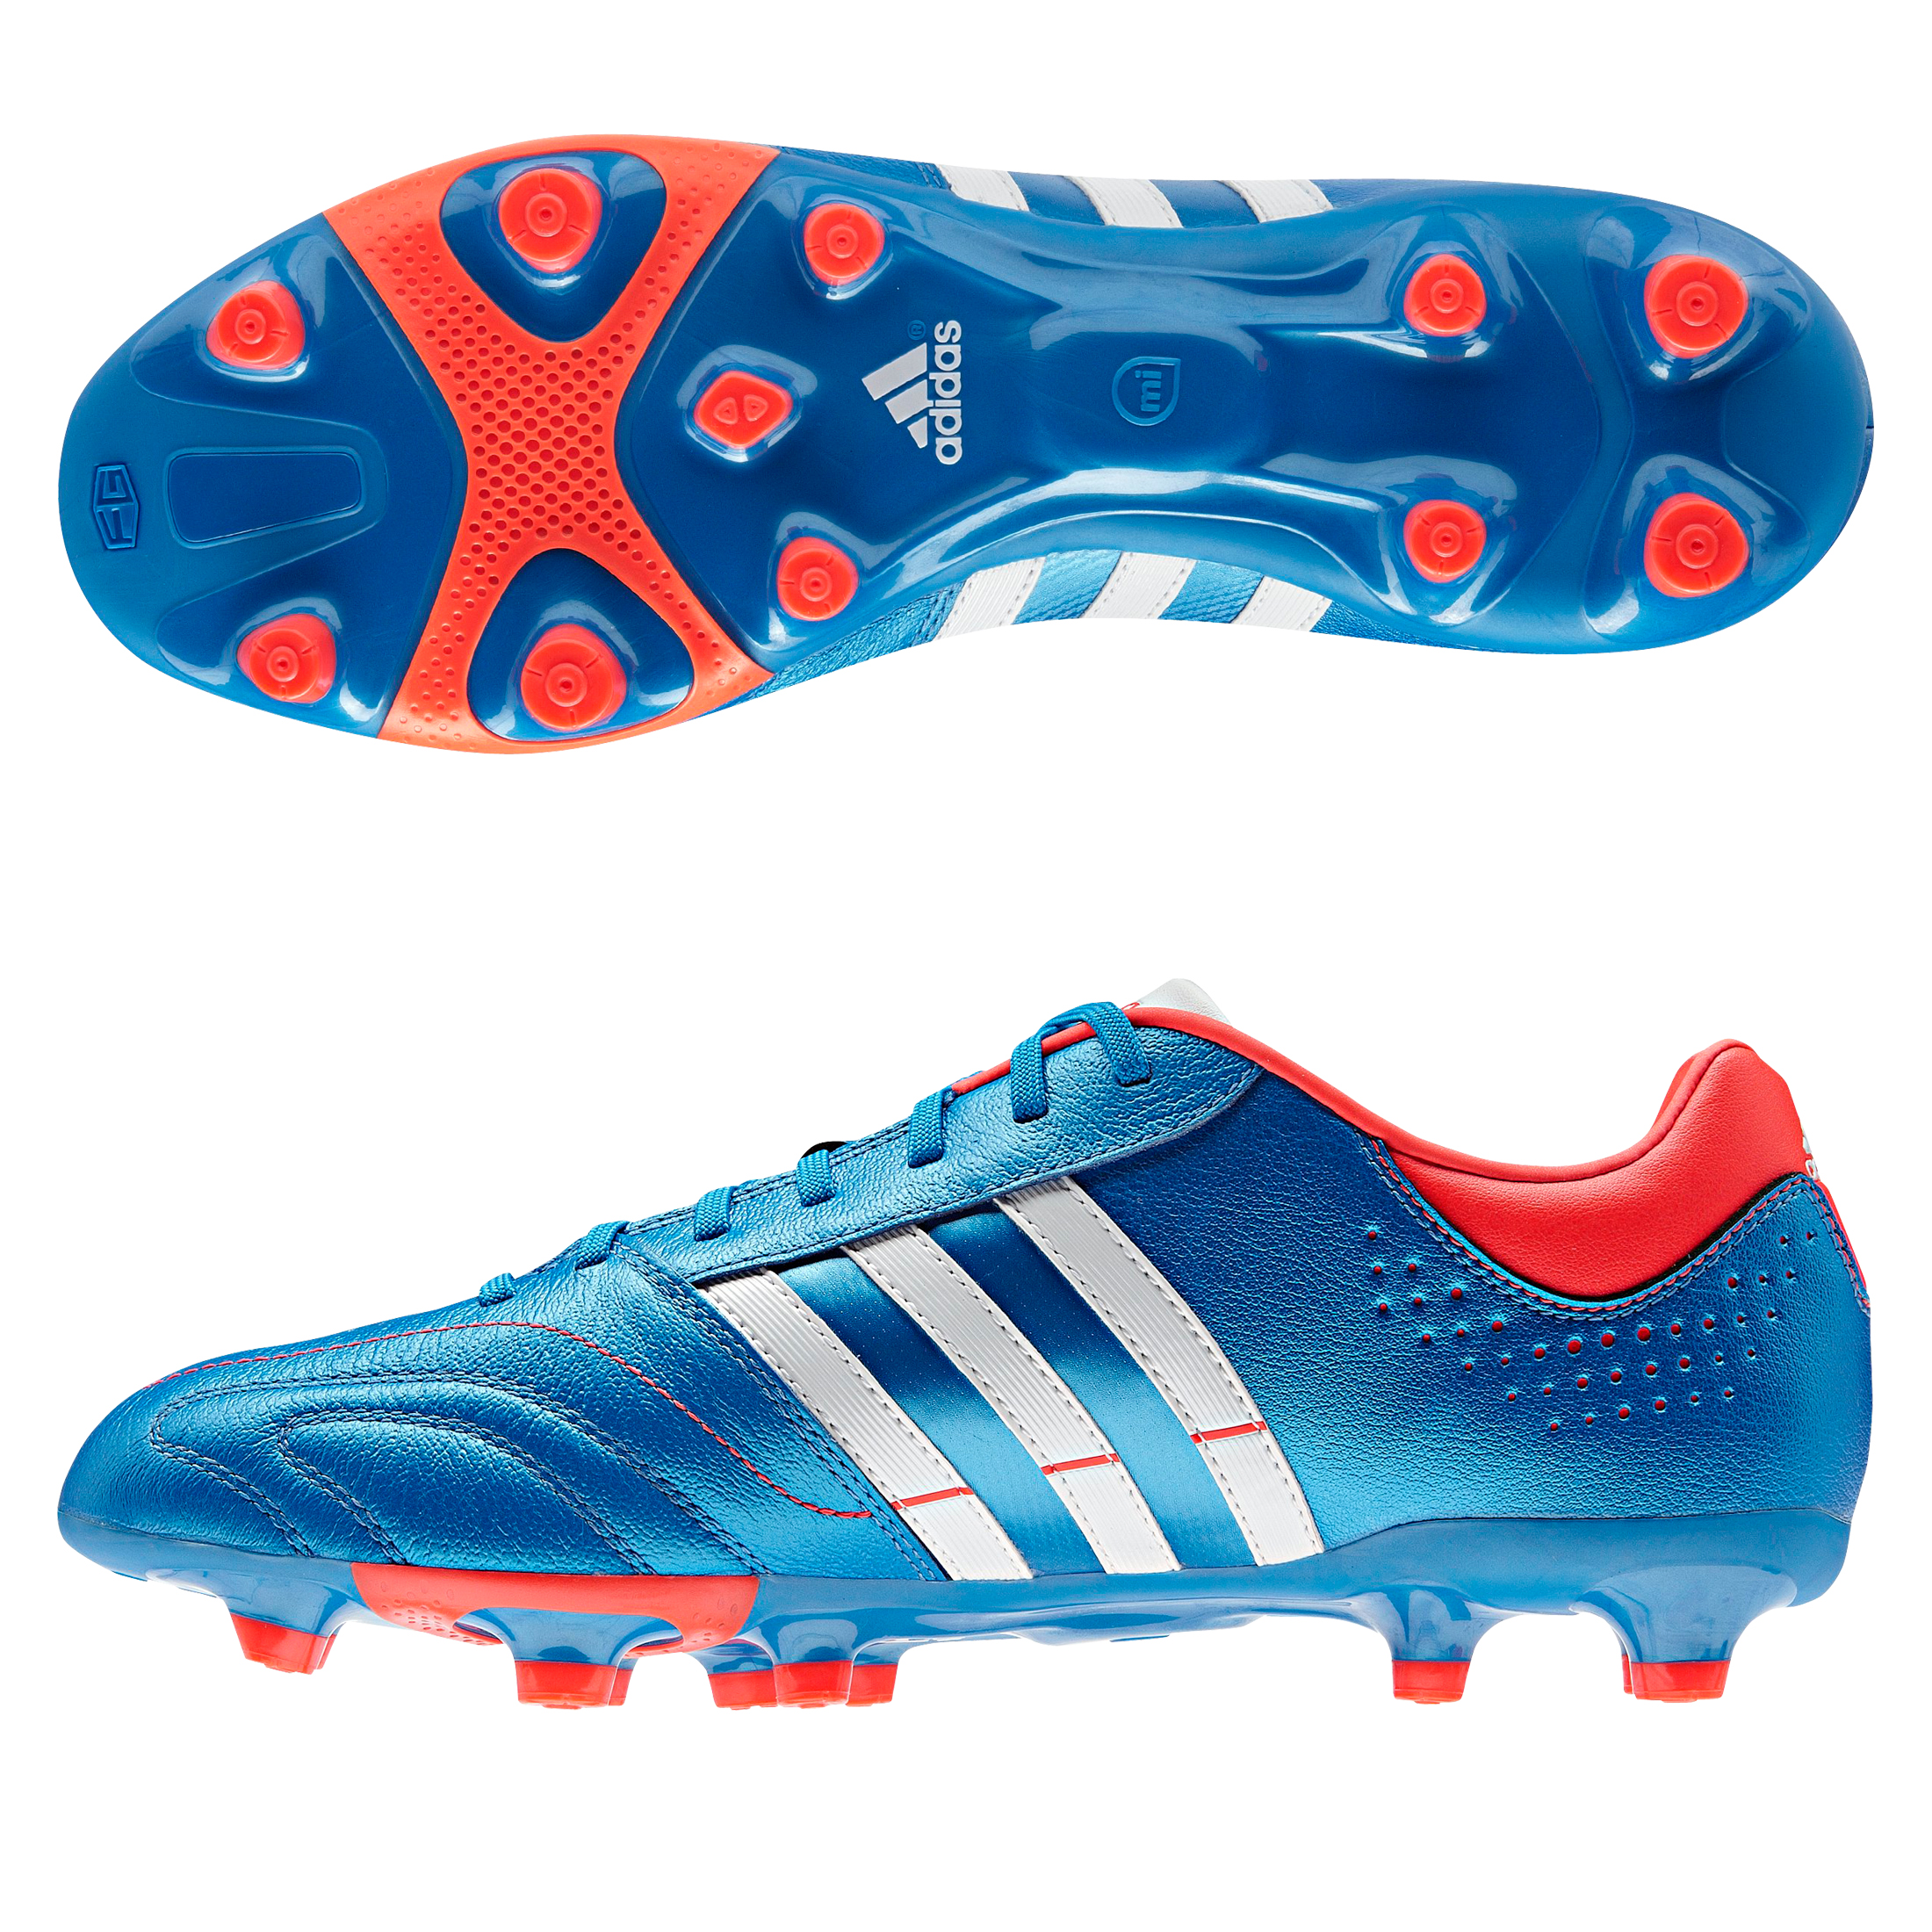 Adidas 11Nova TRX Firm Ground Football Boots - Bright Blue/Running White/Infrared